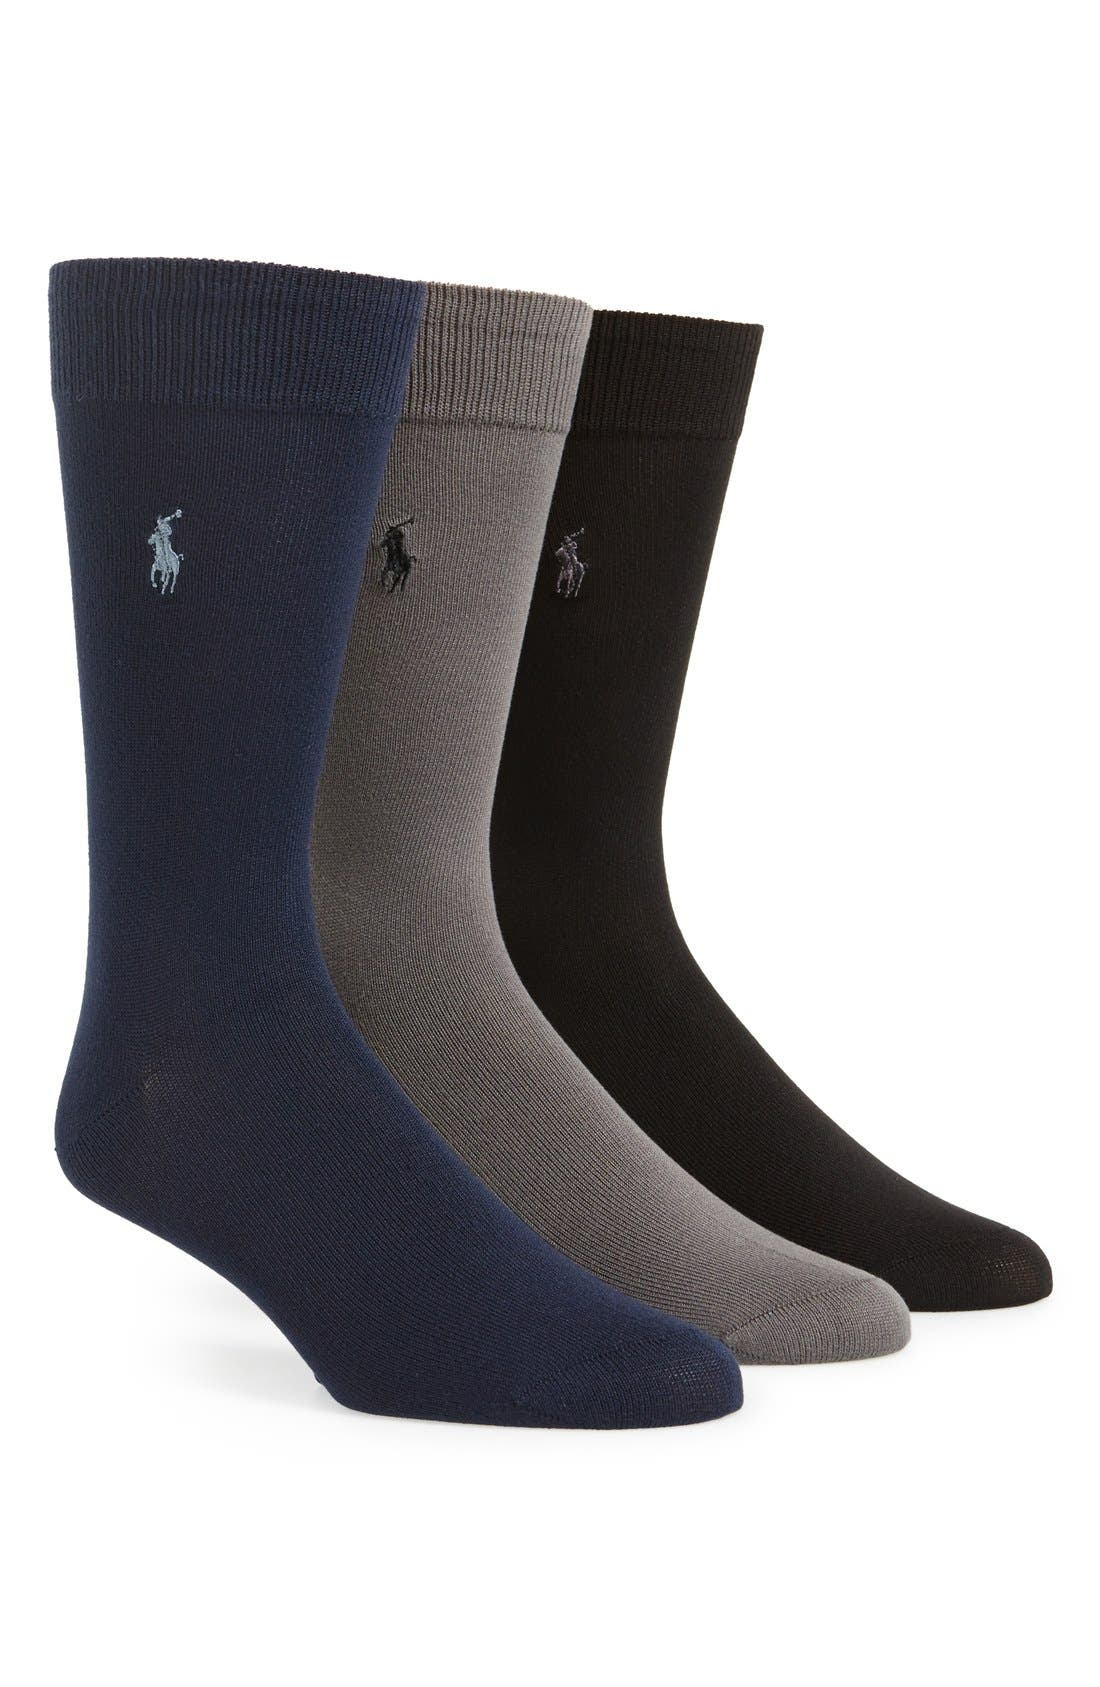 Alternate Image 1 Selected - Polo Ralph Lauren Assorted 3-Pack Supersoft Socks